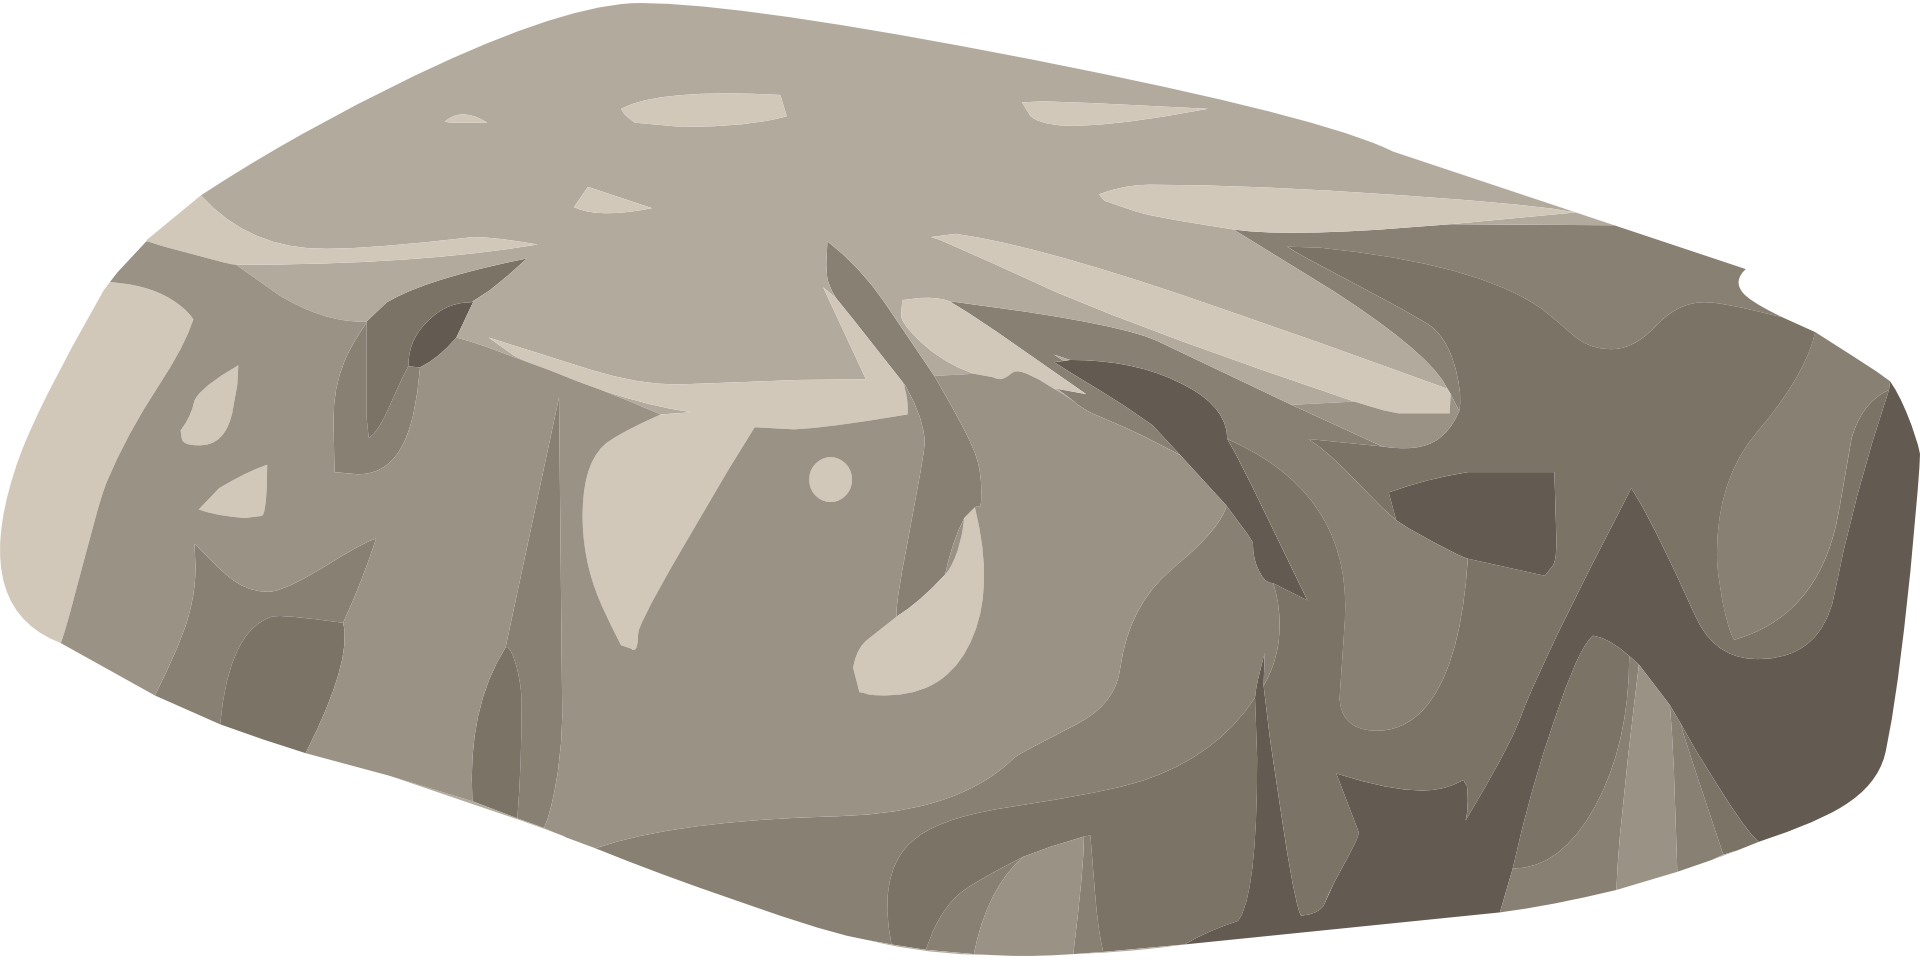 Boulder drawing landscape. Graphic of a free